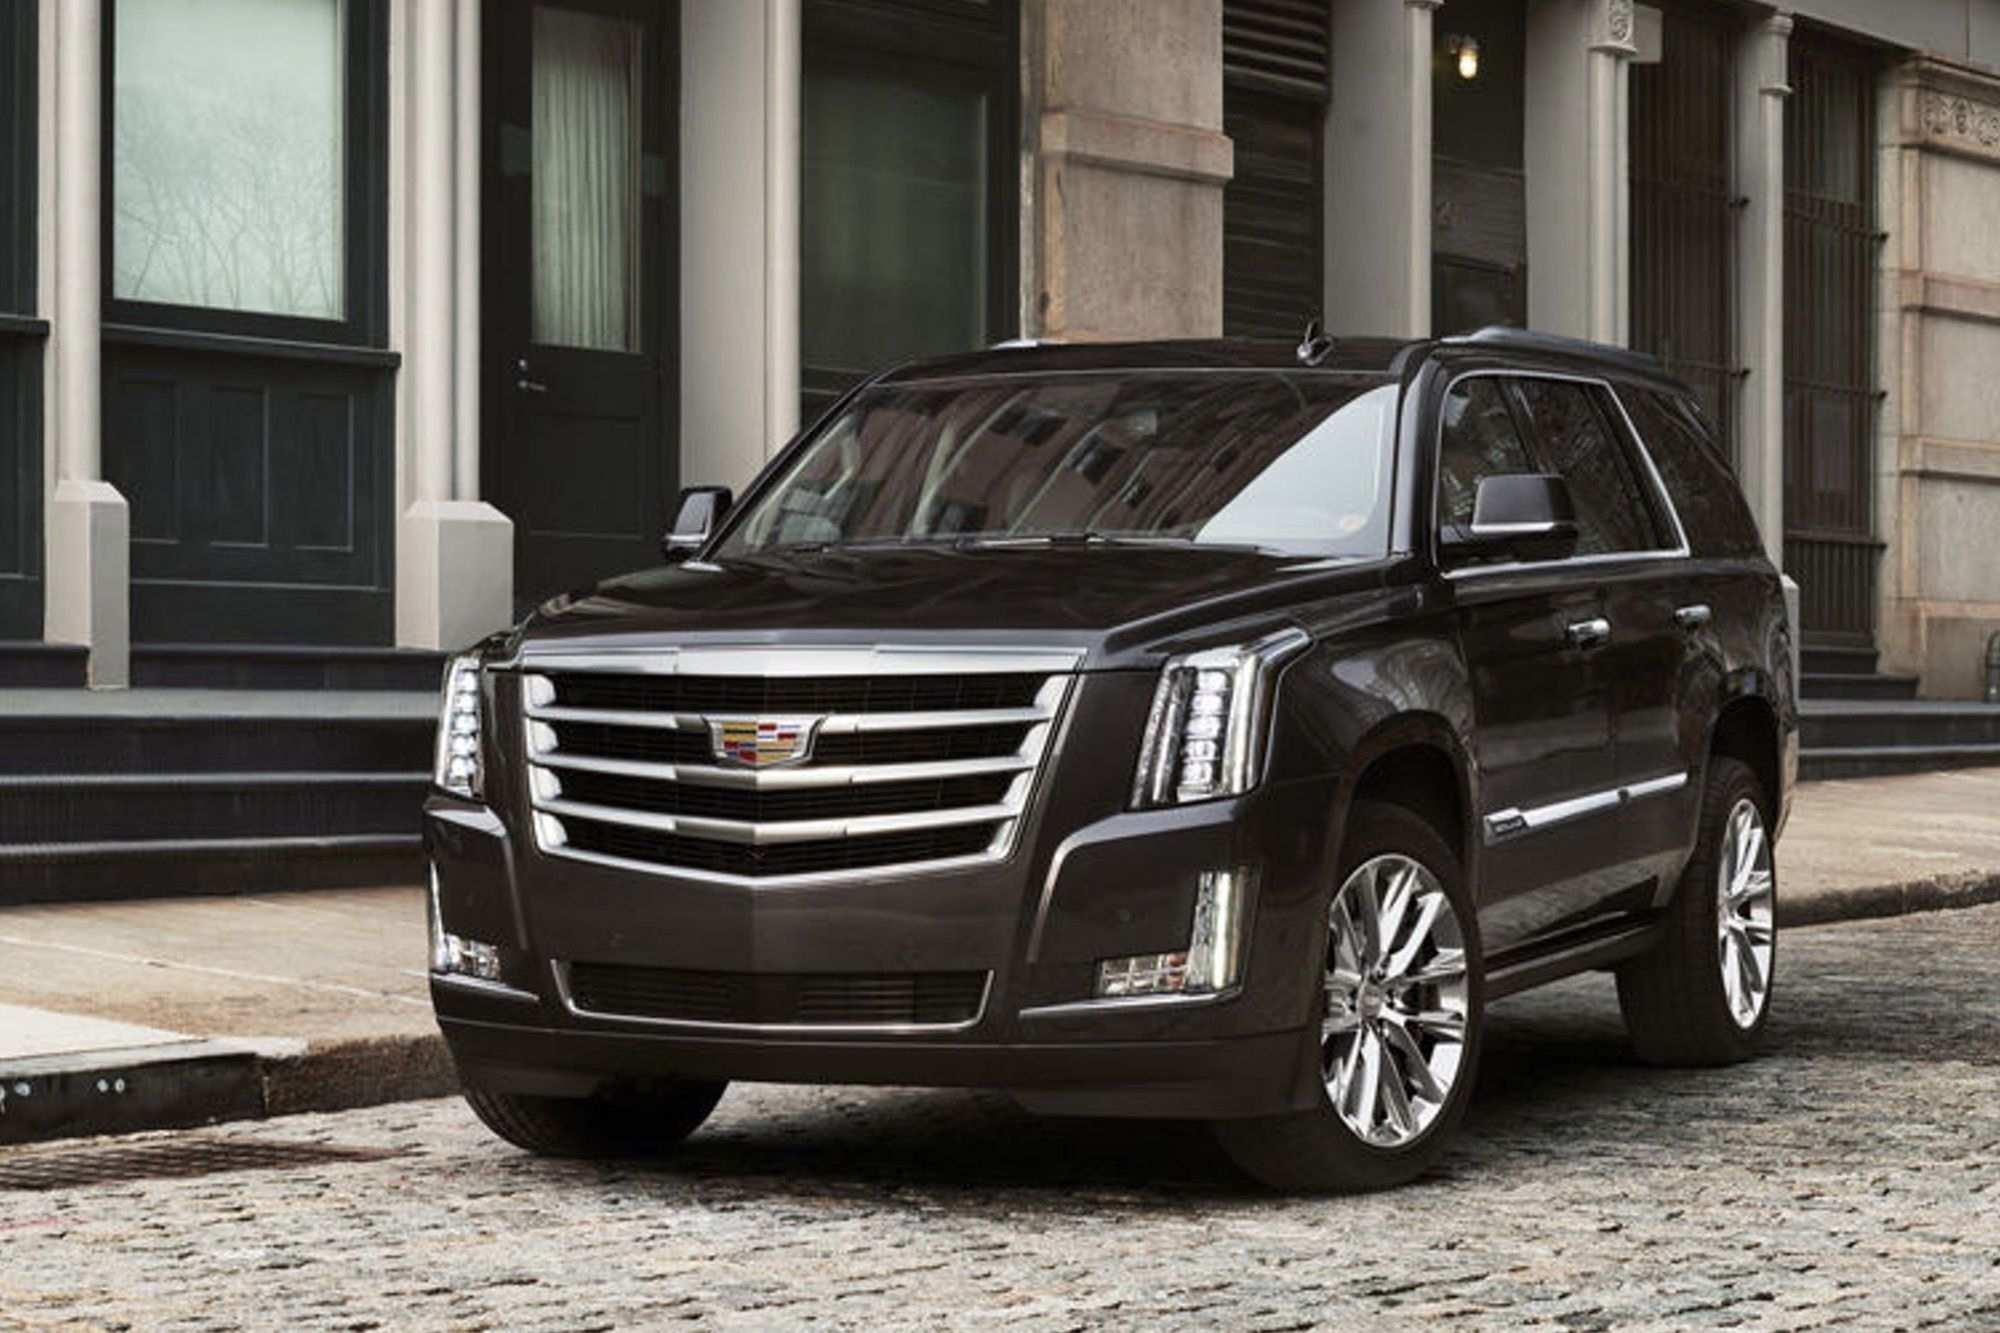 85 The Best Gmc For 2019 First Drive Price Performance And Review Photos for Best Gmc For 2019 First Drive Price Performance And Review